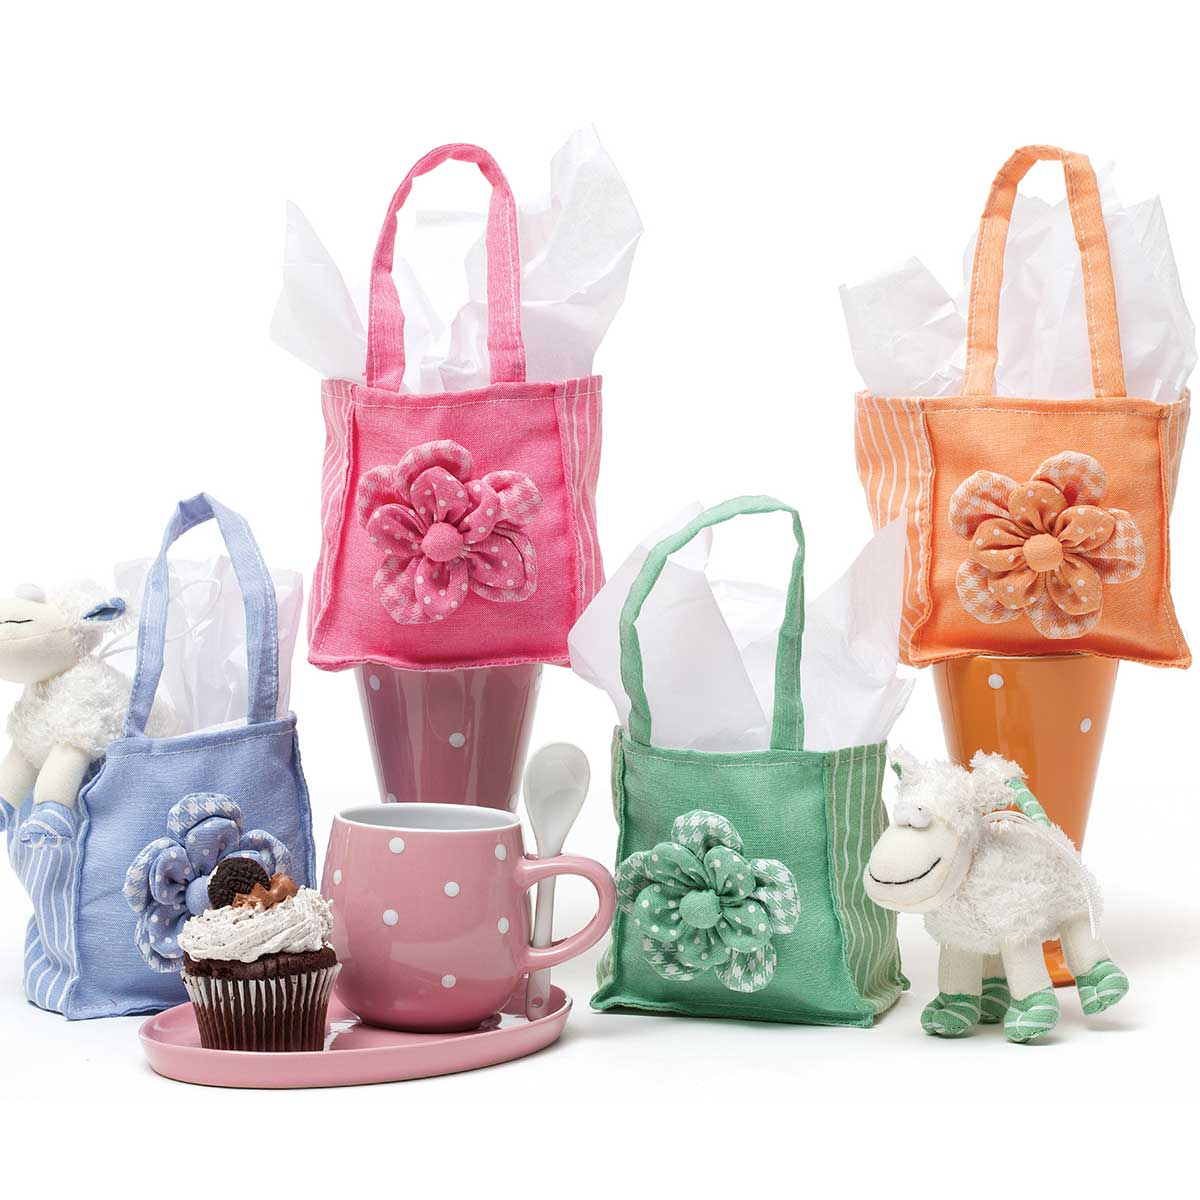 """Itty-Bitty Flower Tote 4.75�x3�x9.25"""" 4 Assorted T3401 50%"""